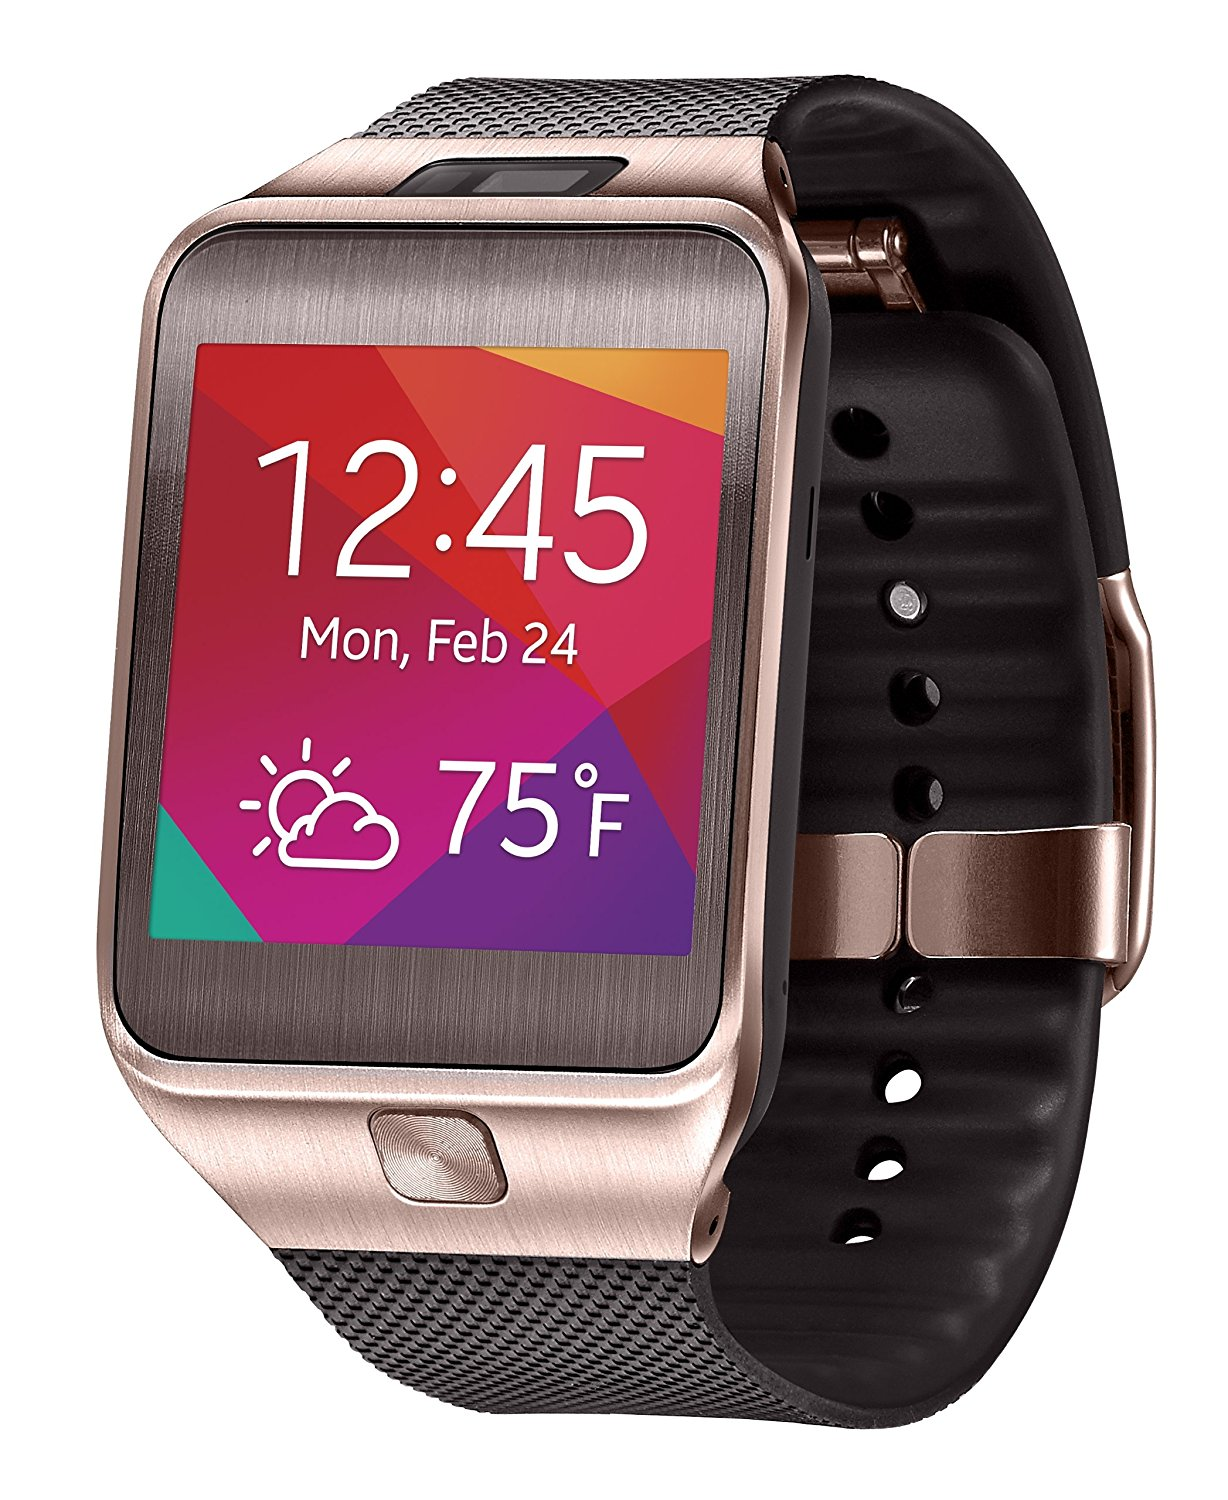 samsung gear 2 r380 smartwatch for sale in jamaica. Black Bedroom Furniture Sets. Home Design Ideas